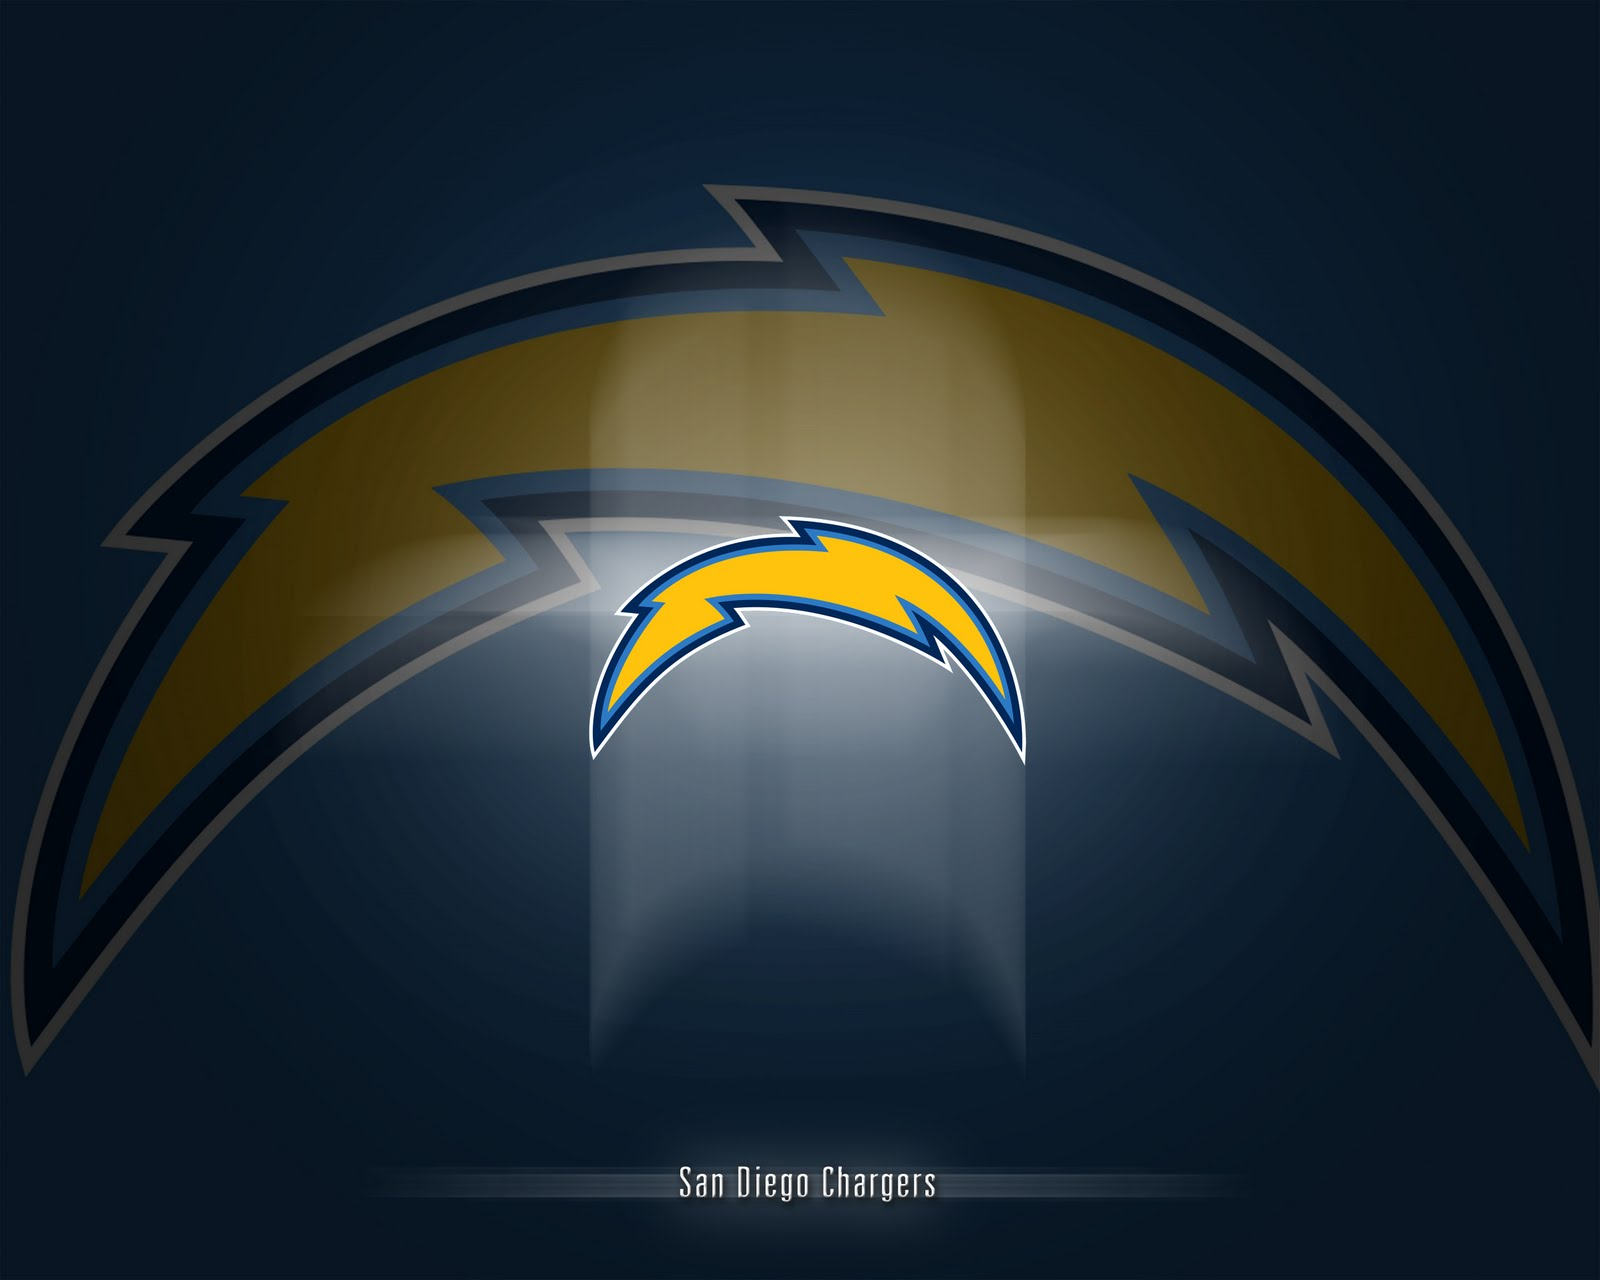 San Diego Chargers Wallpaper Hd Full Hd Pictures